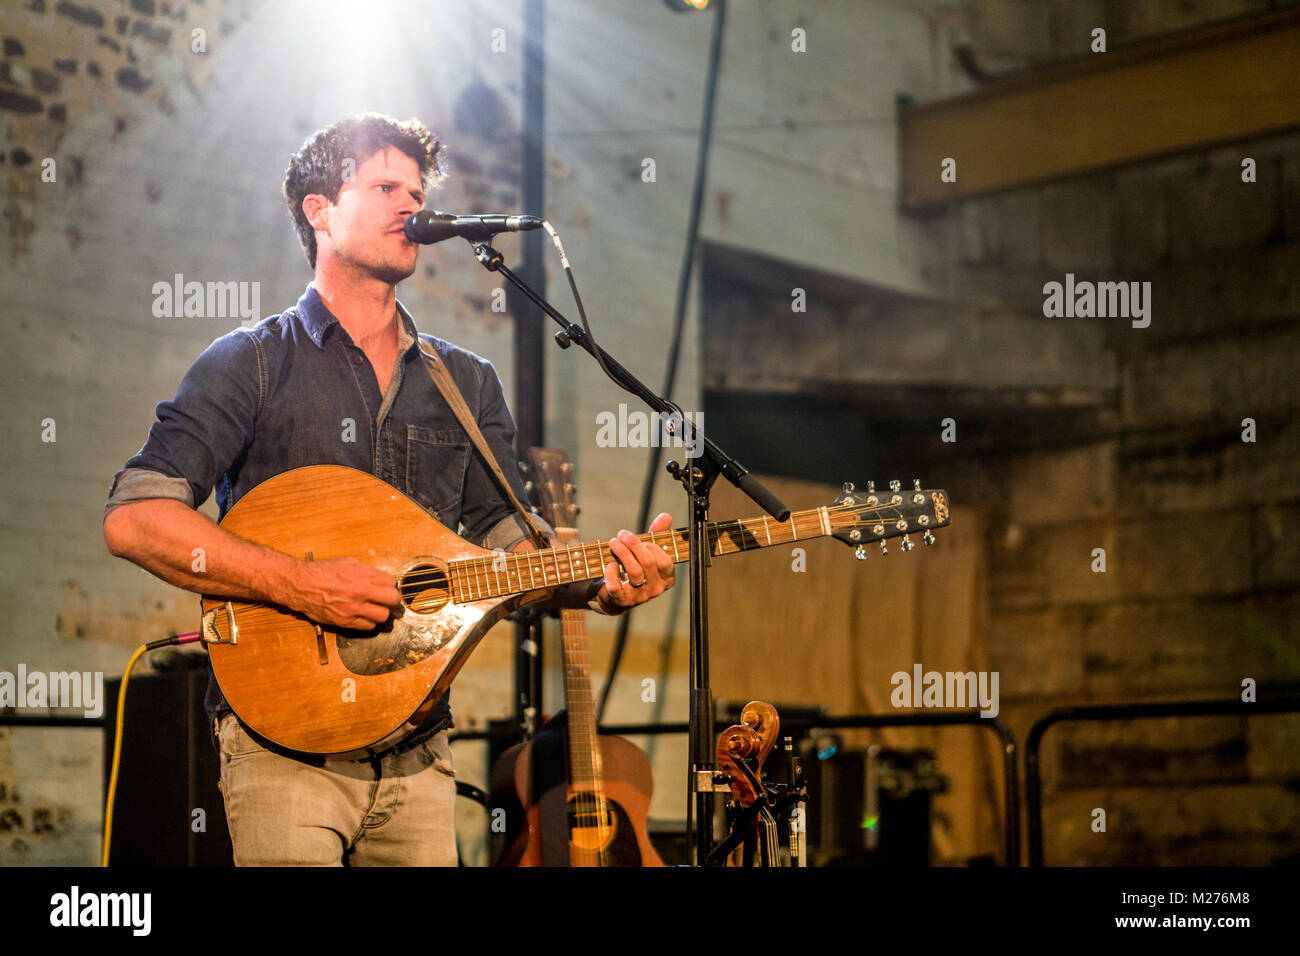 Seth Lakeman on stage at the Royal William Yard Festival Plymouth. - Stock Image